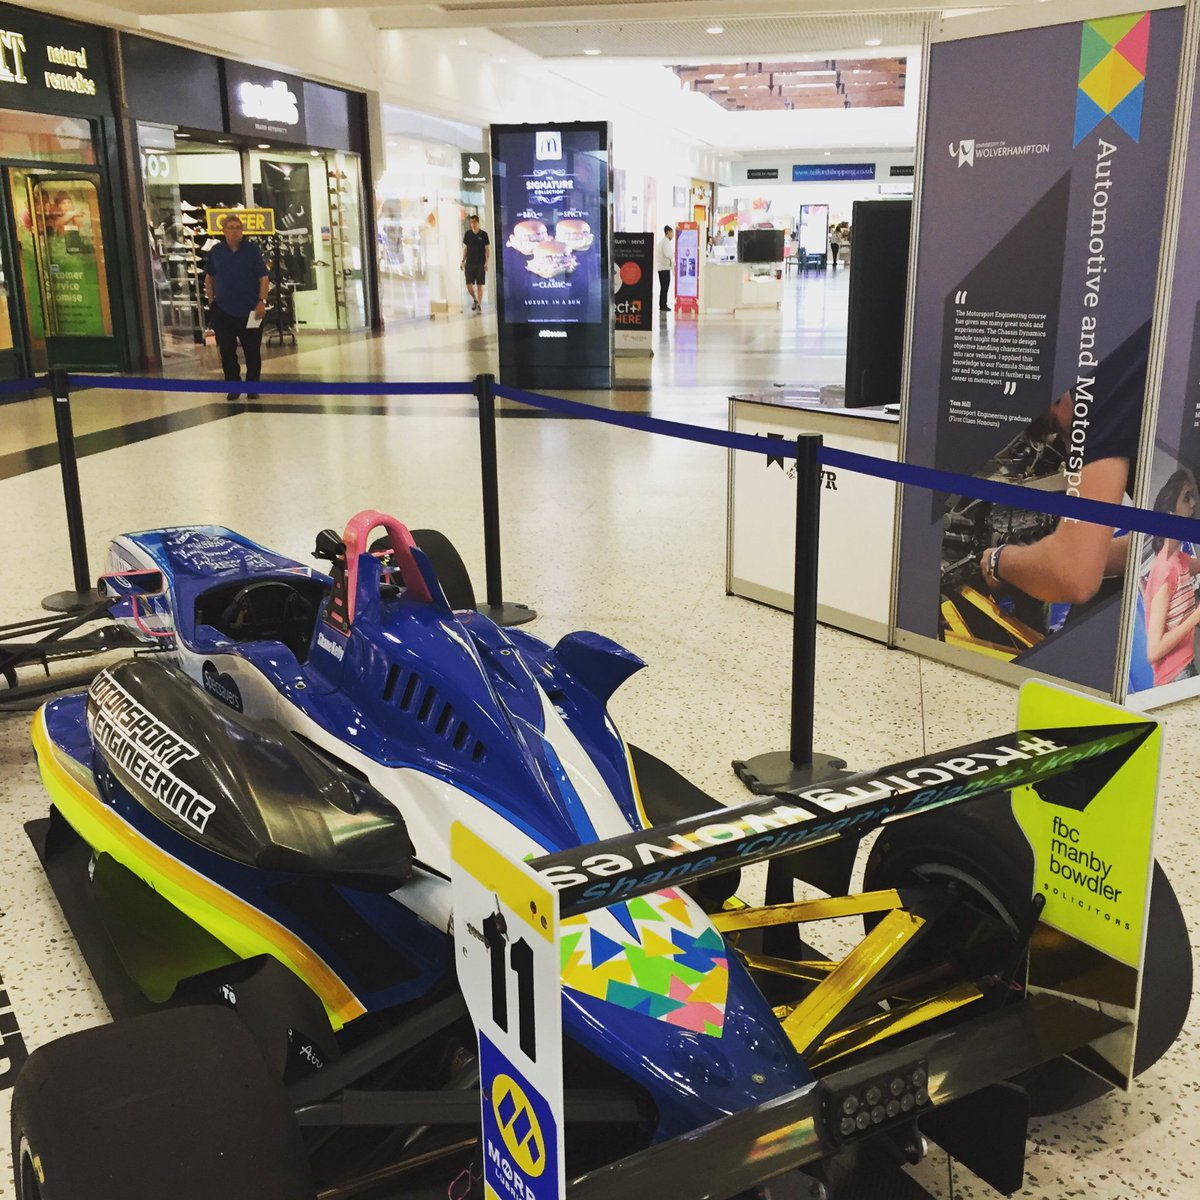 We never stop!!!! Come and see our F3 cup car at @telfordcentre today!Come meet the team and find out about @wlvuni #telford #engineering #students #studentlife #uwr #racingwolves @TungaloyUK @LaserProcess @VarleyRedTop @Morrisoil @quickgrind @lenovo @BriStorSystems @BetaToolsUK<br>http://pic.twitter.com/w6and8yz35